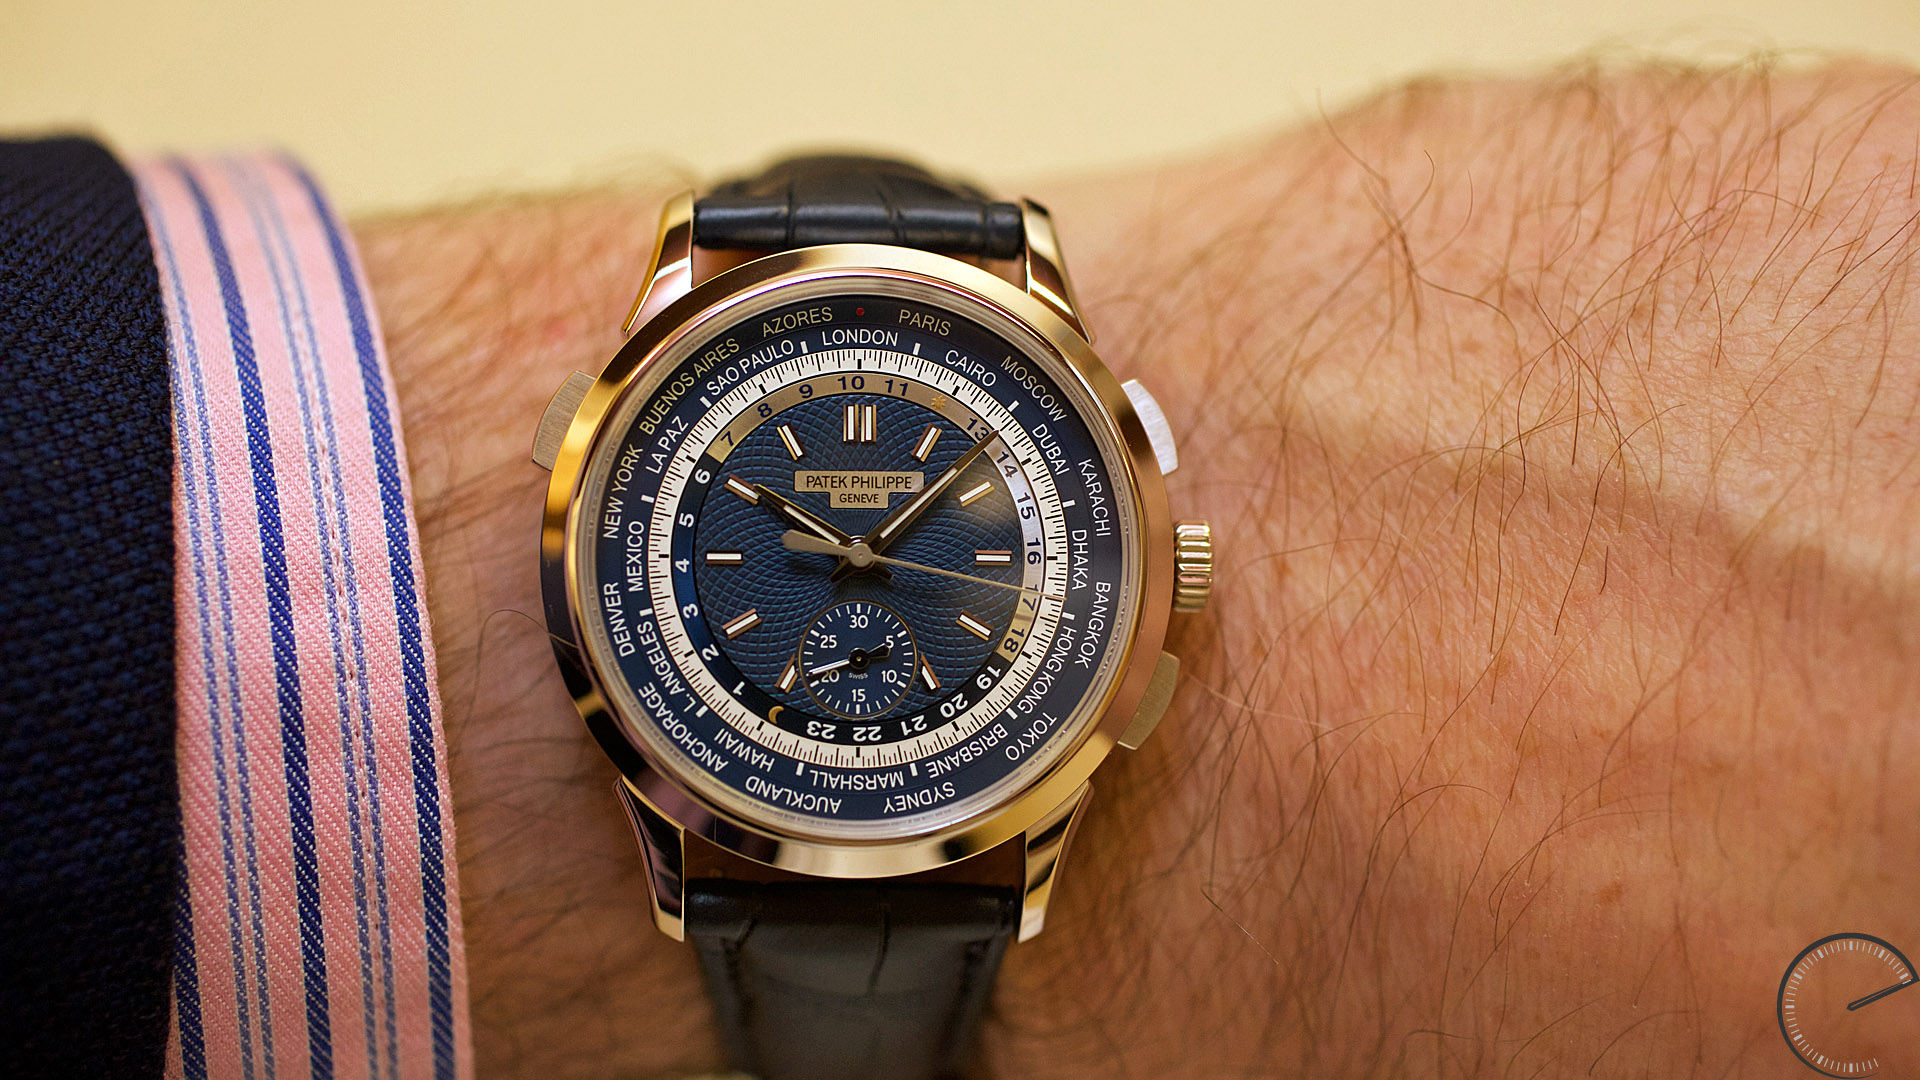 swiss made complications patek philippe world time replica chronograph ref 5930 how to buy. Black Bedroom Furniture Sets. Home Design Ideas